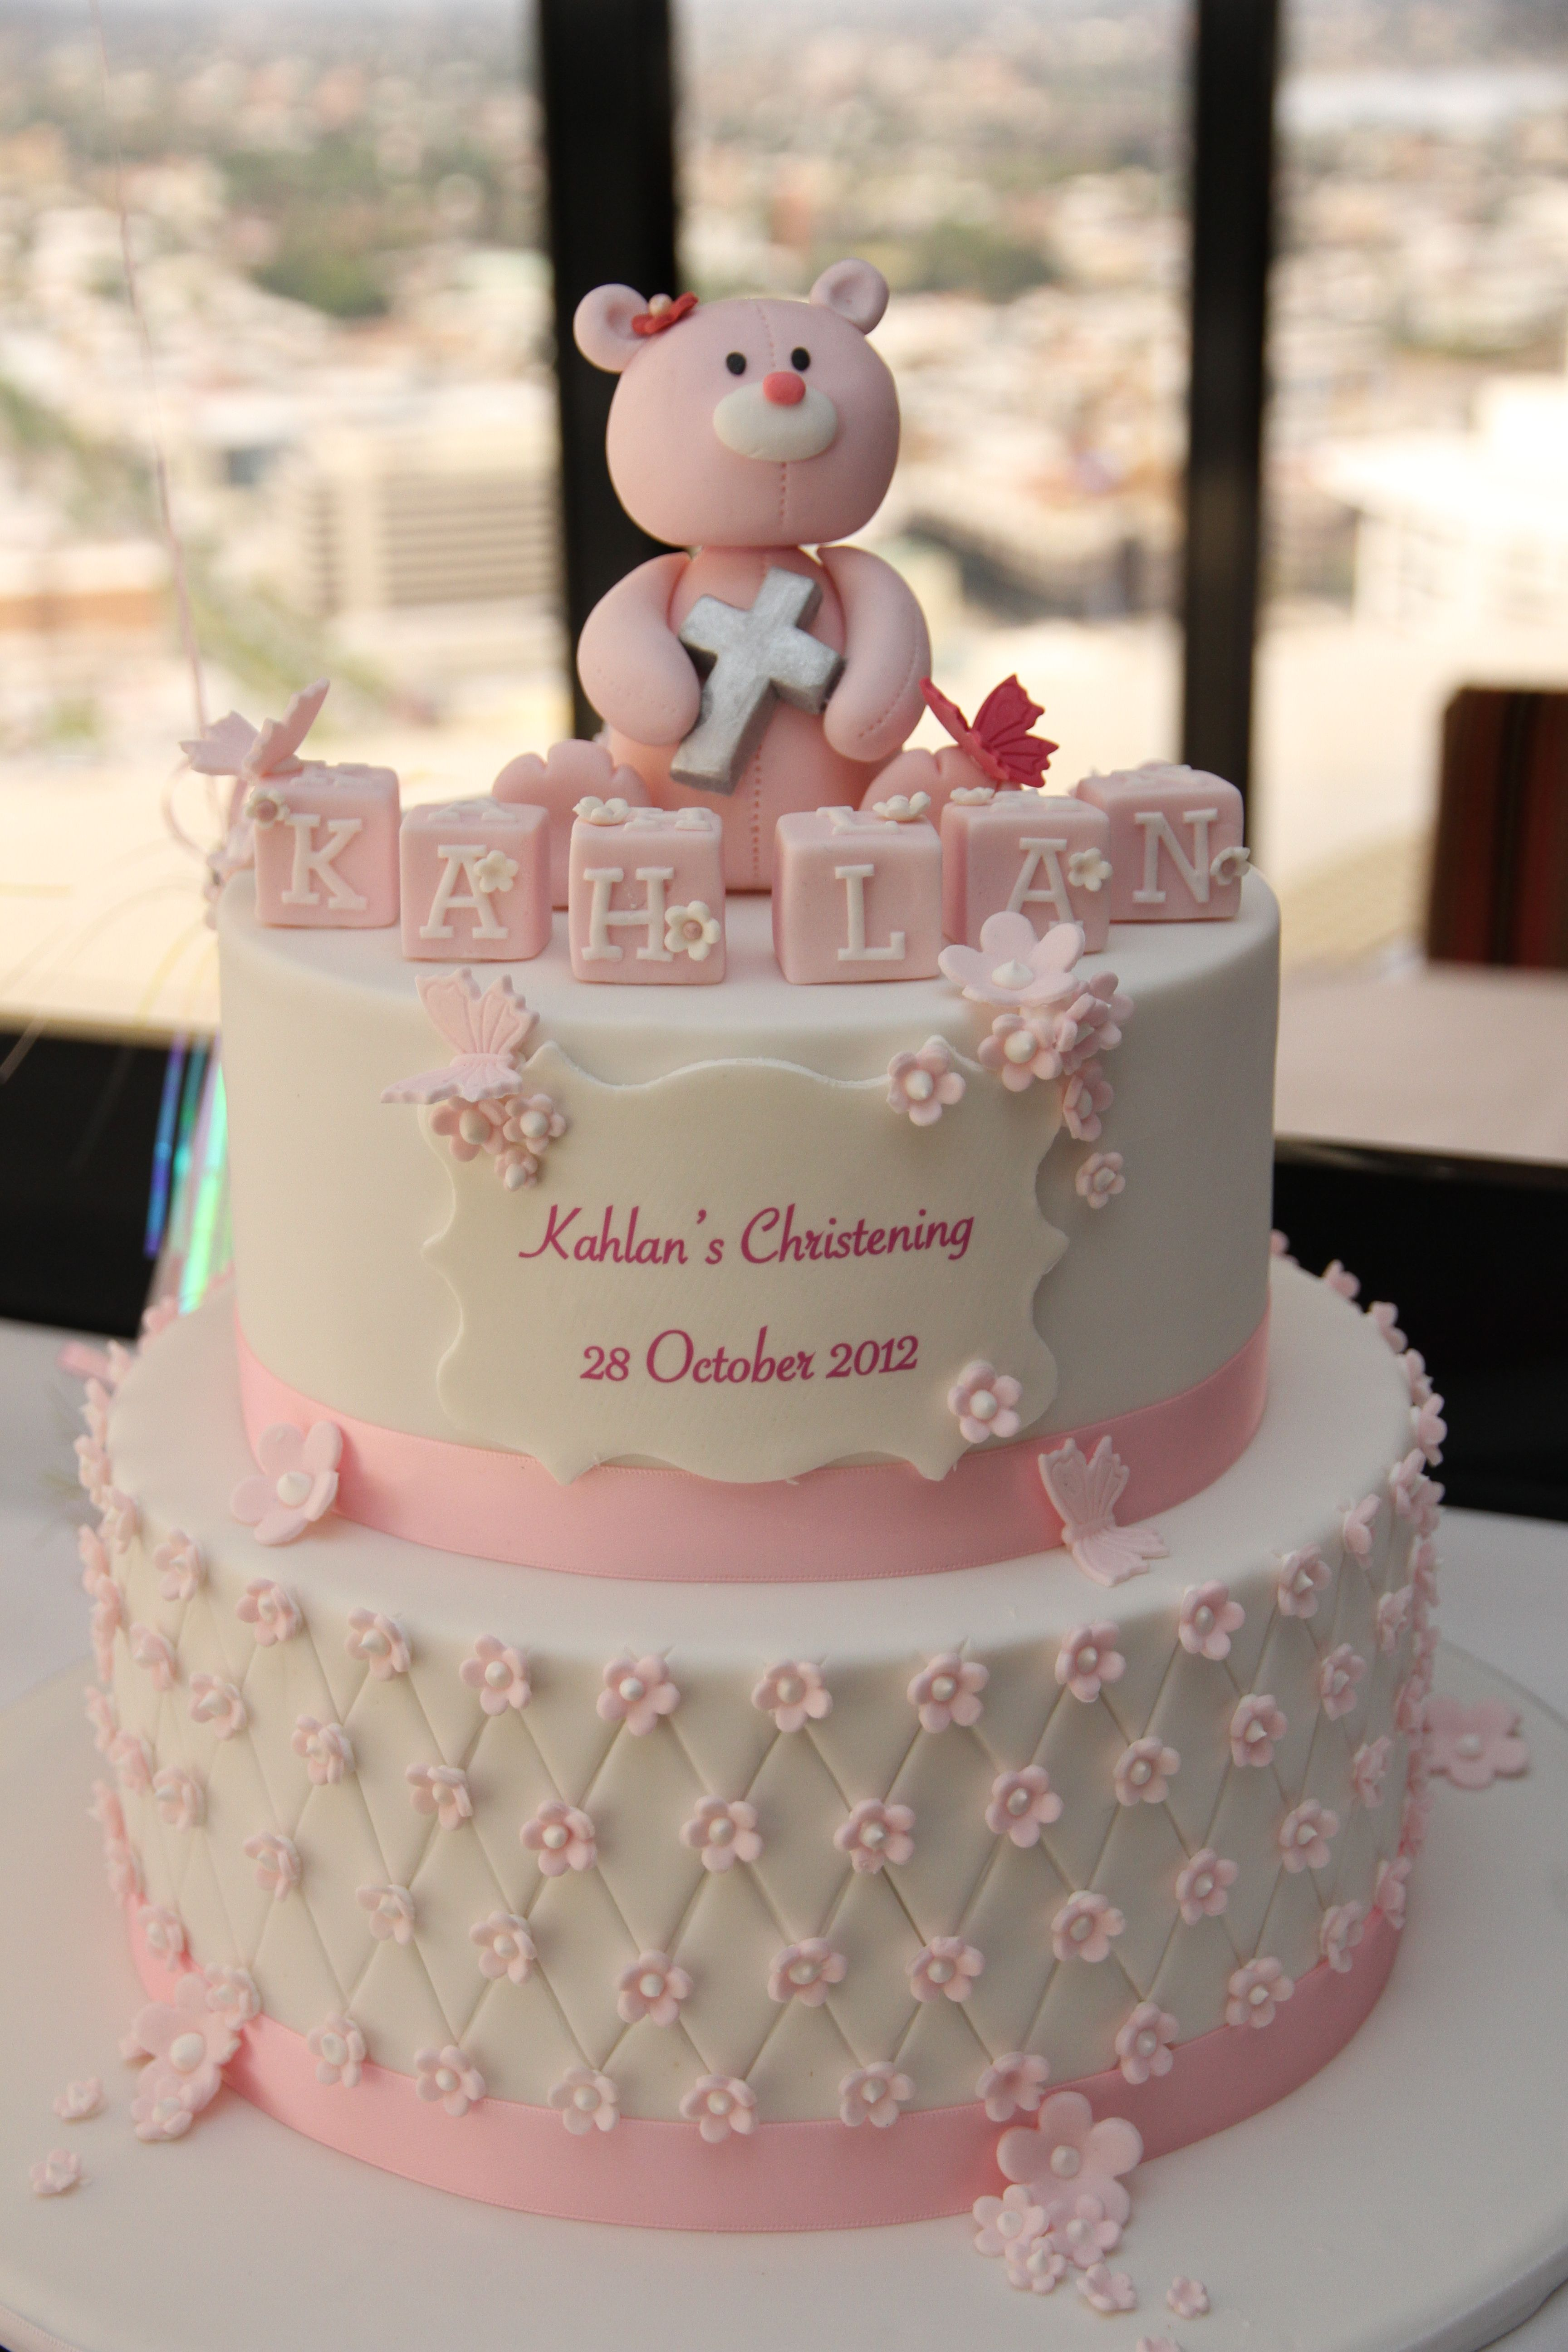 A cute Christening cake for a delightful baby girl Special